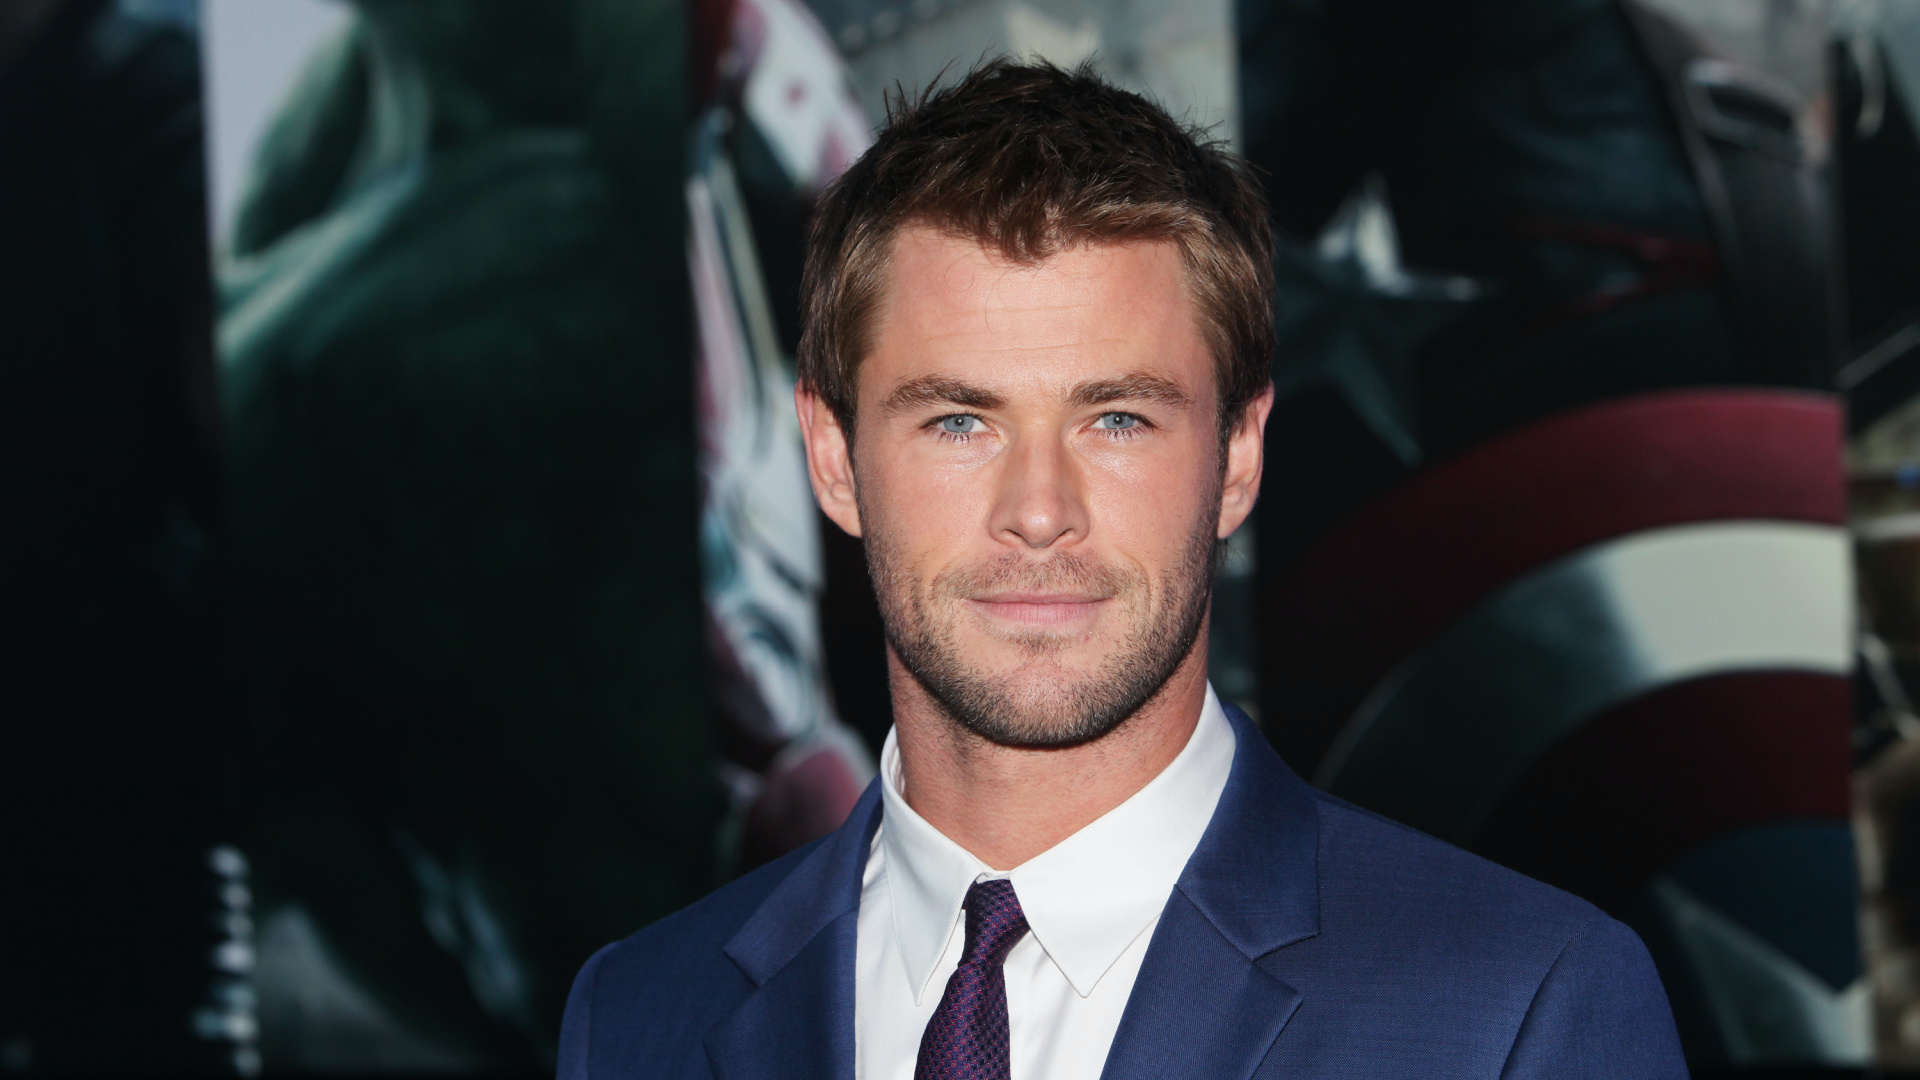 Happy birthday, Chris Hemsworth! His best moments, from Home and Away to Sexiest Man Alive